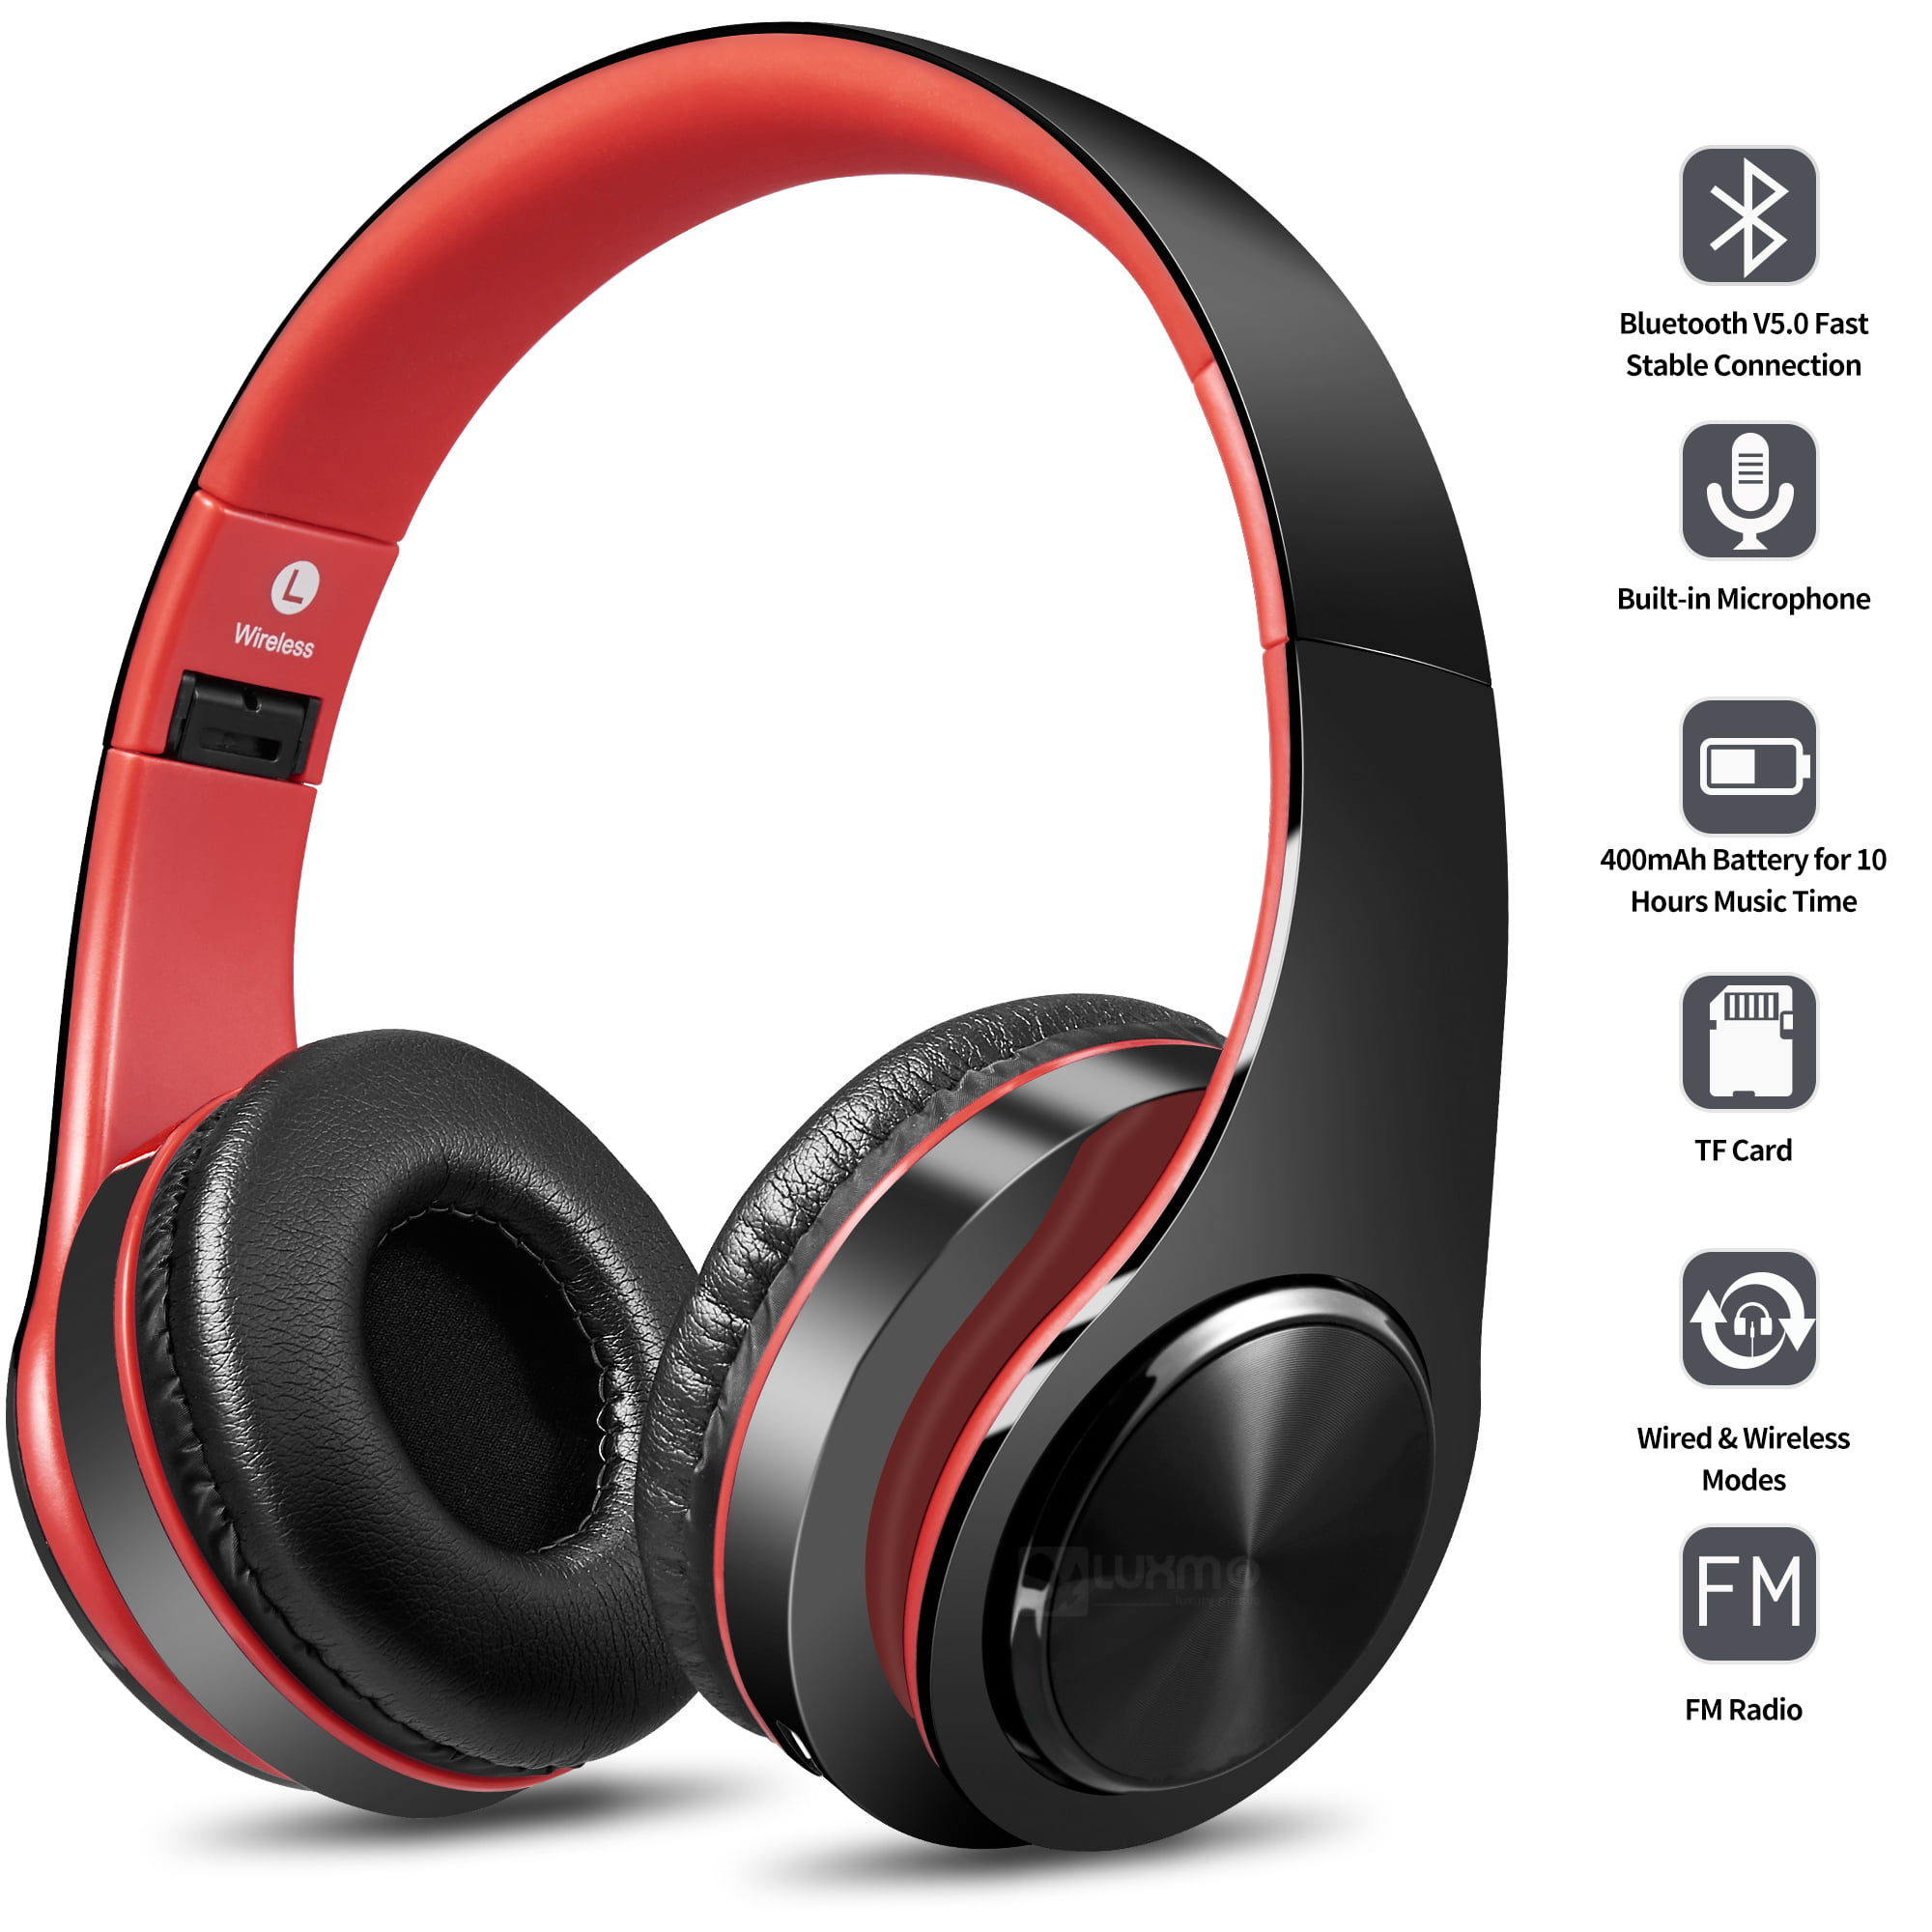 Bluetooth Headphones Over Ear Luxmo Wireless Noise Cancelling Headphones Foldable Stereo Headset With Mic Rechargeable Headphones Handsfree Headphones For Pc Laptops And Smartphones Walmart Com Walmart Com